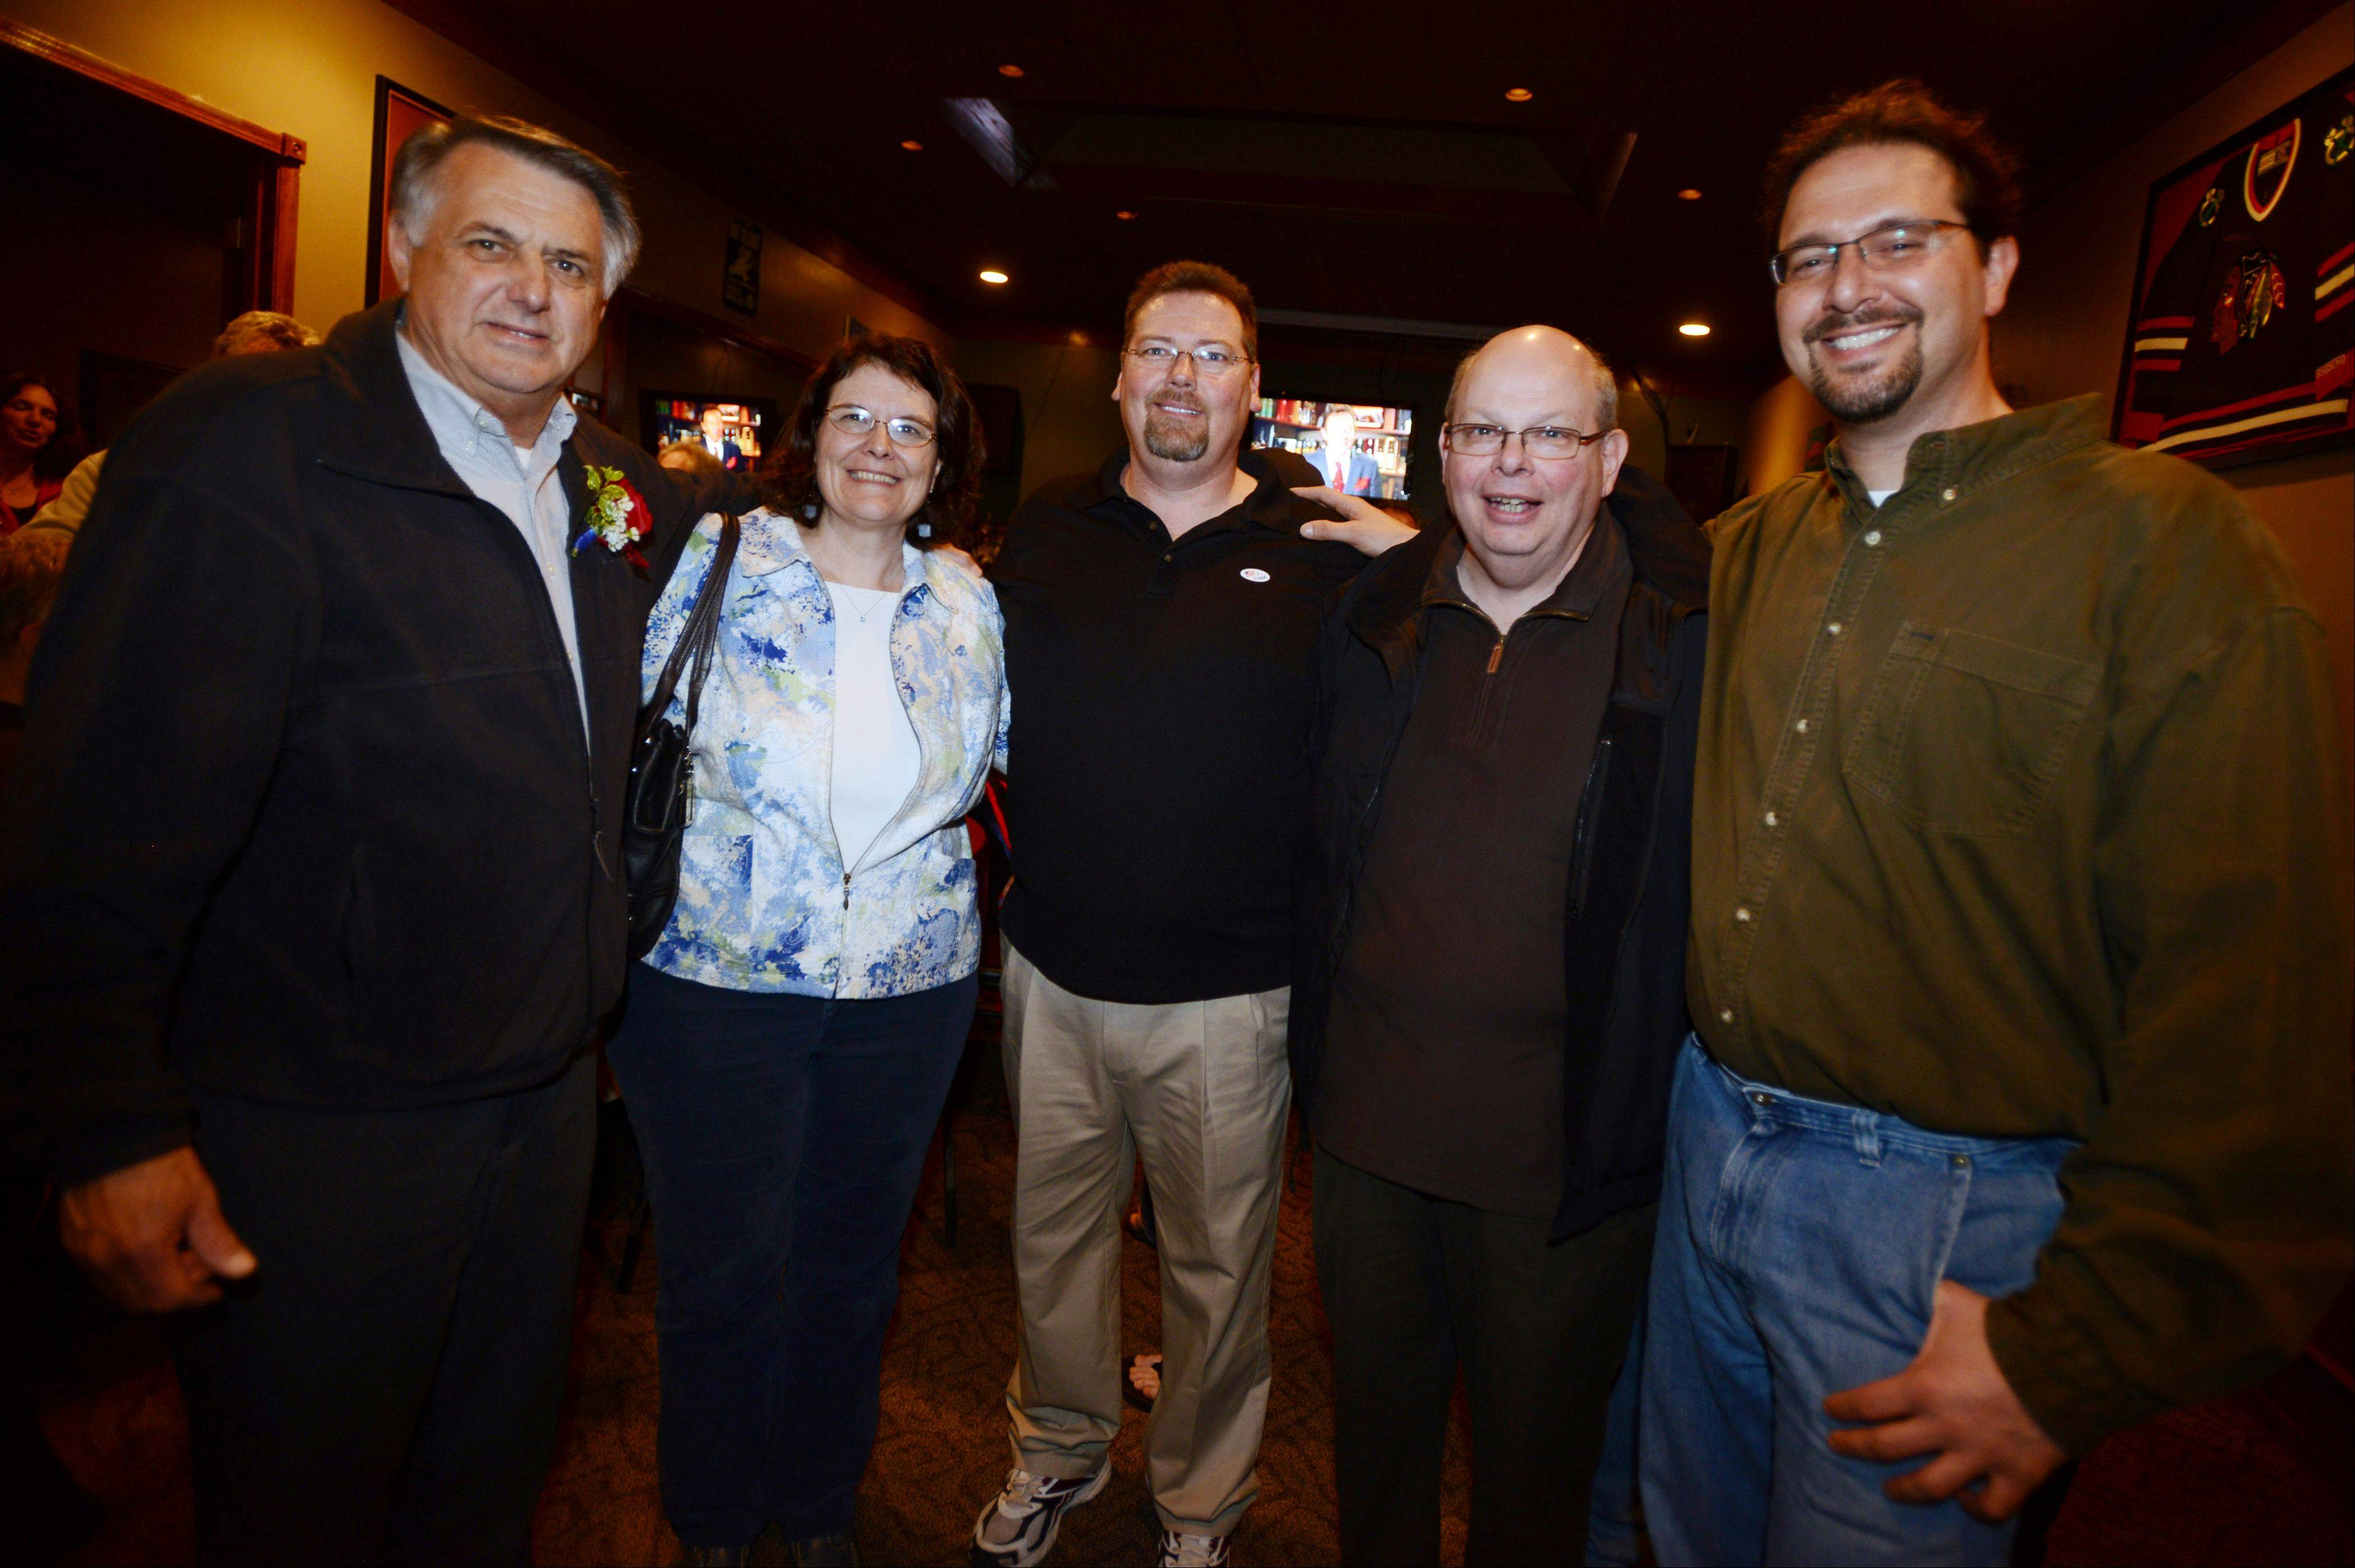 Island Lake candidates Charles Amrich, left, Teresa Ponio, Keith Johns, Tony Sciarrone and Mark Beeson celebrate their landslide victories Tuesday.